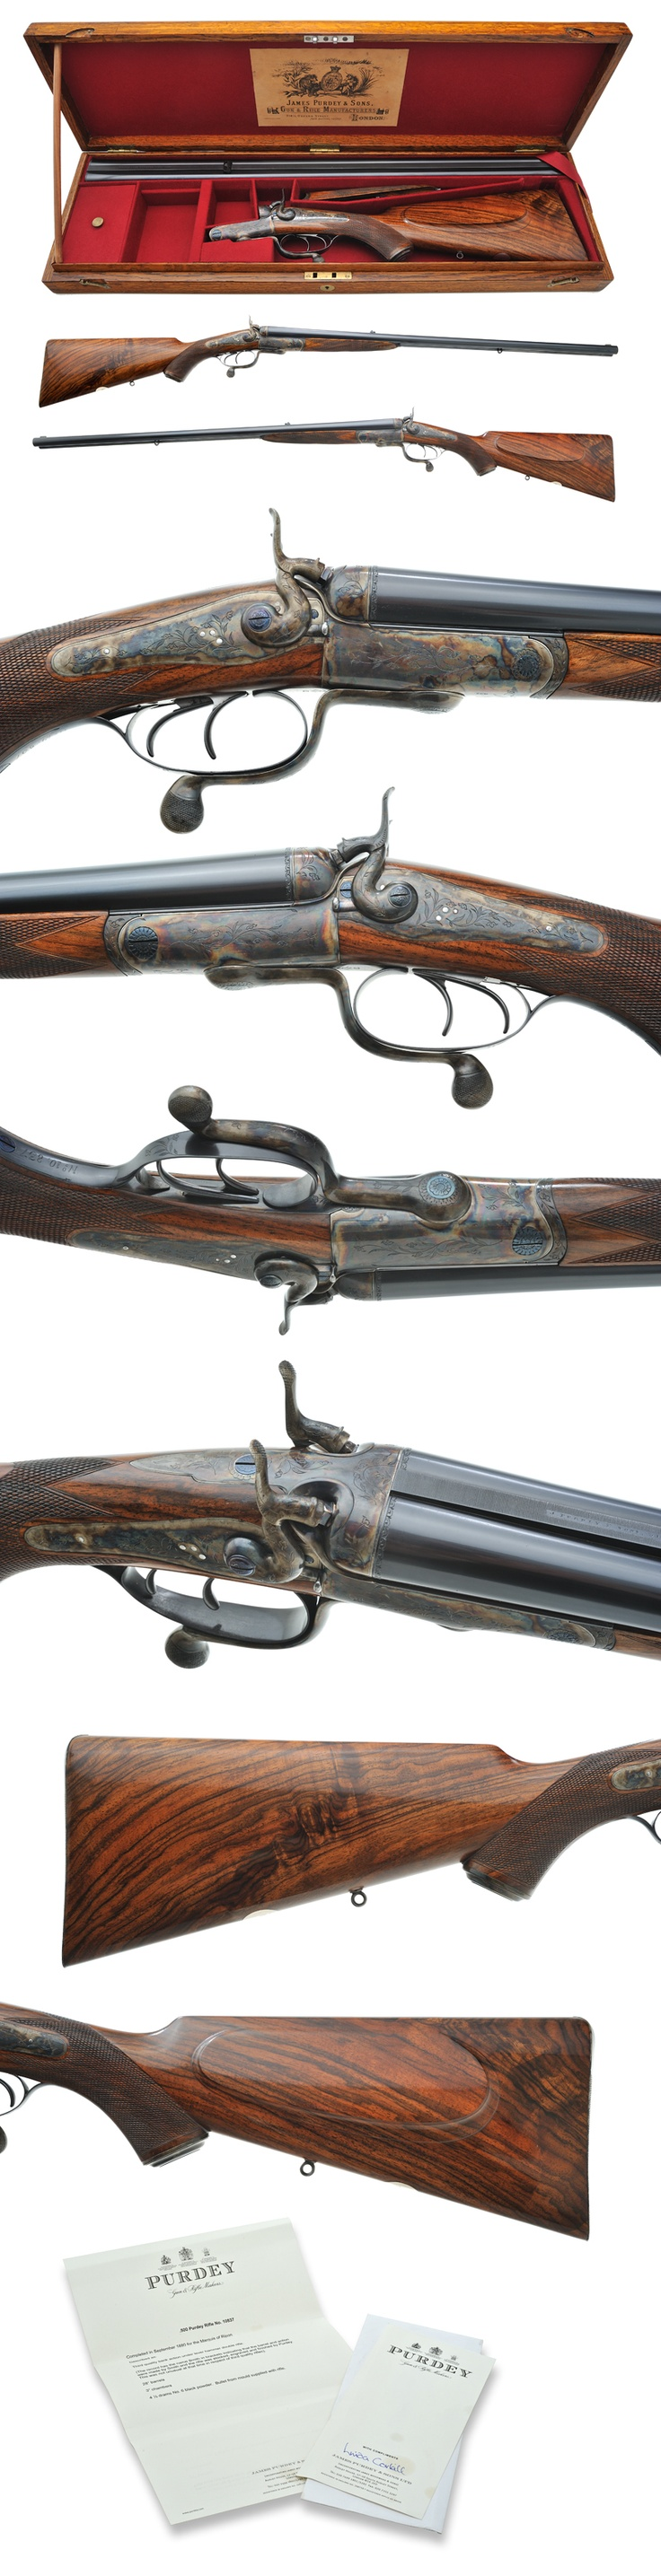 Griffin & Howe Rifle Details Page  J. Purdey & Sons double (black powder) rifle chambered in .500. A wonderful specimen prior to smokeless powder....